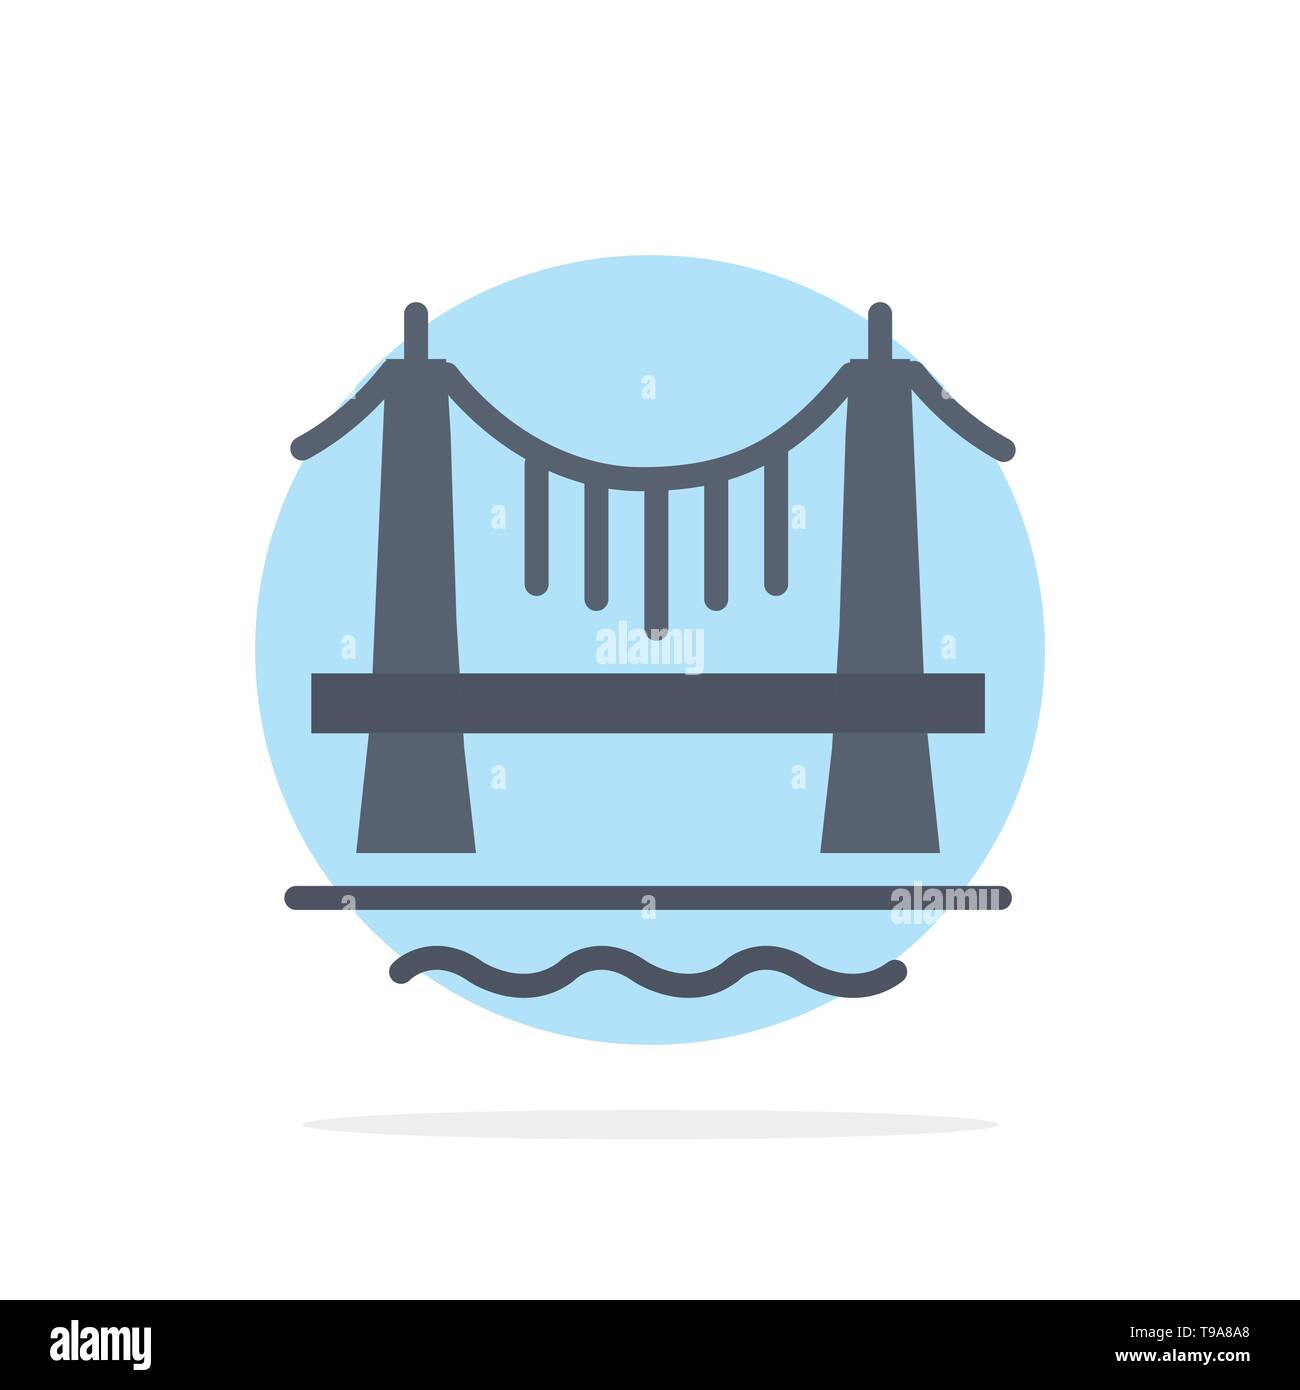 Bridge, Building, City, Cityscape Abstract Circle Background Flat color Icon - Stock Image